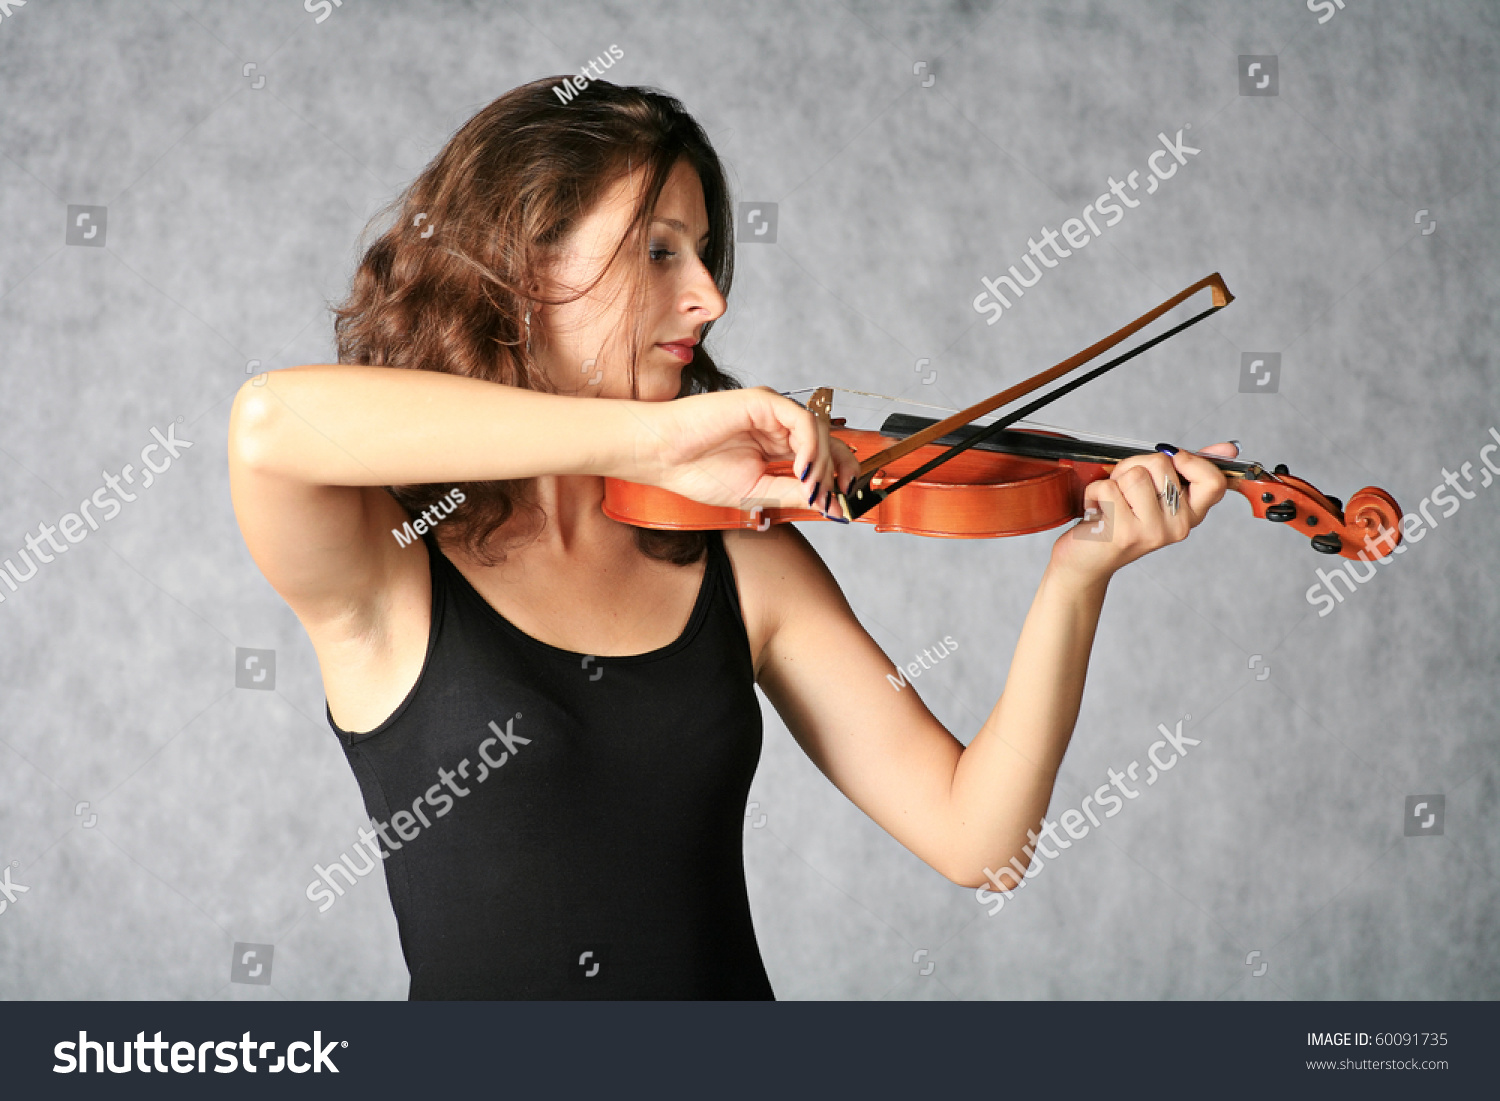 Beautiful brown haired girl with violin on grey background. Woman artist with violin in music concept on stage.